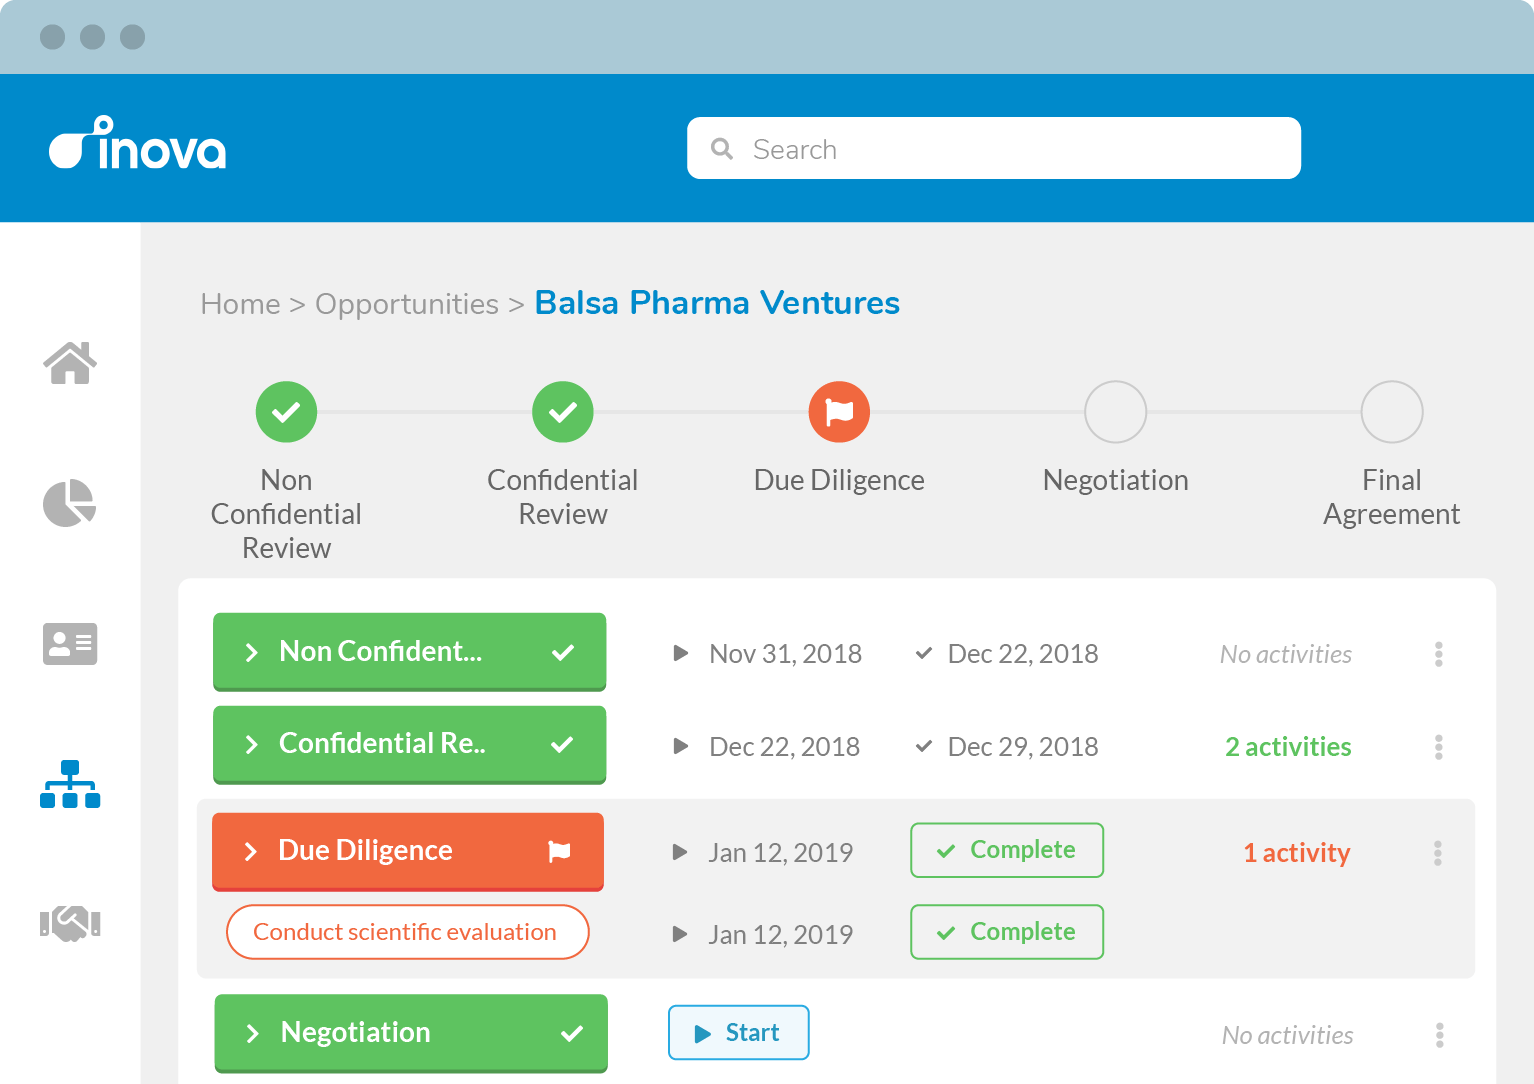 Track your discussions efficiently